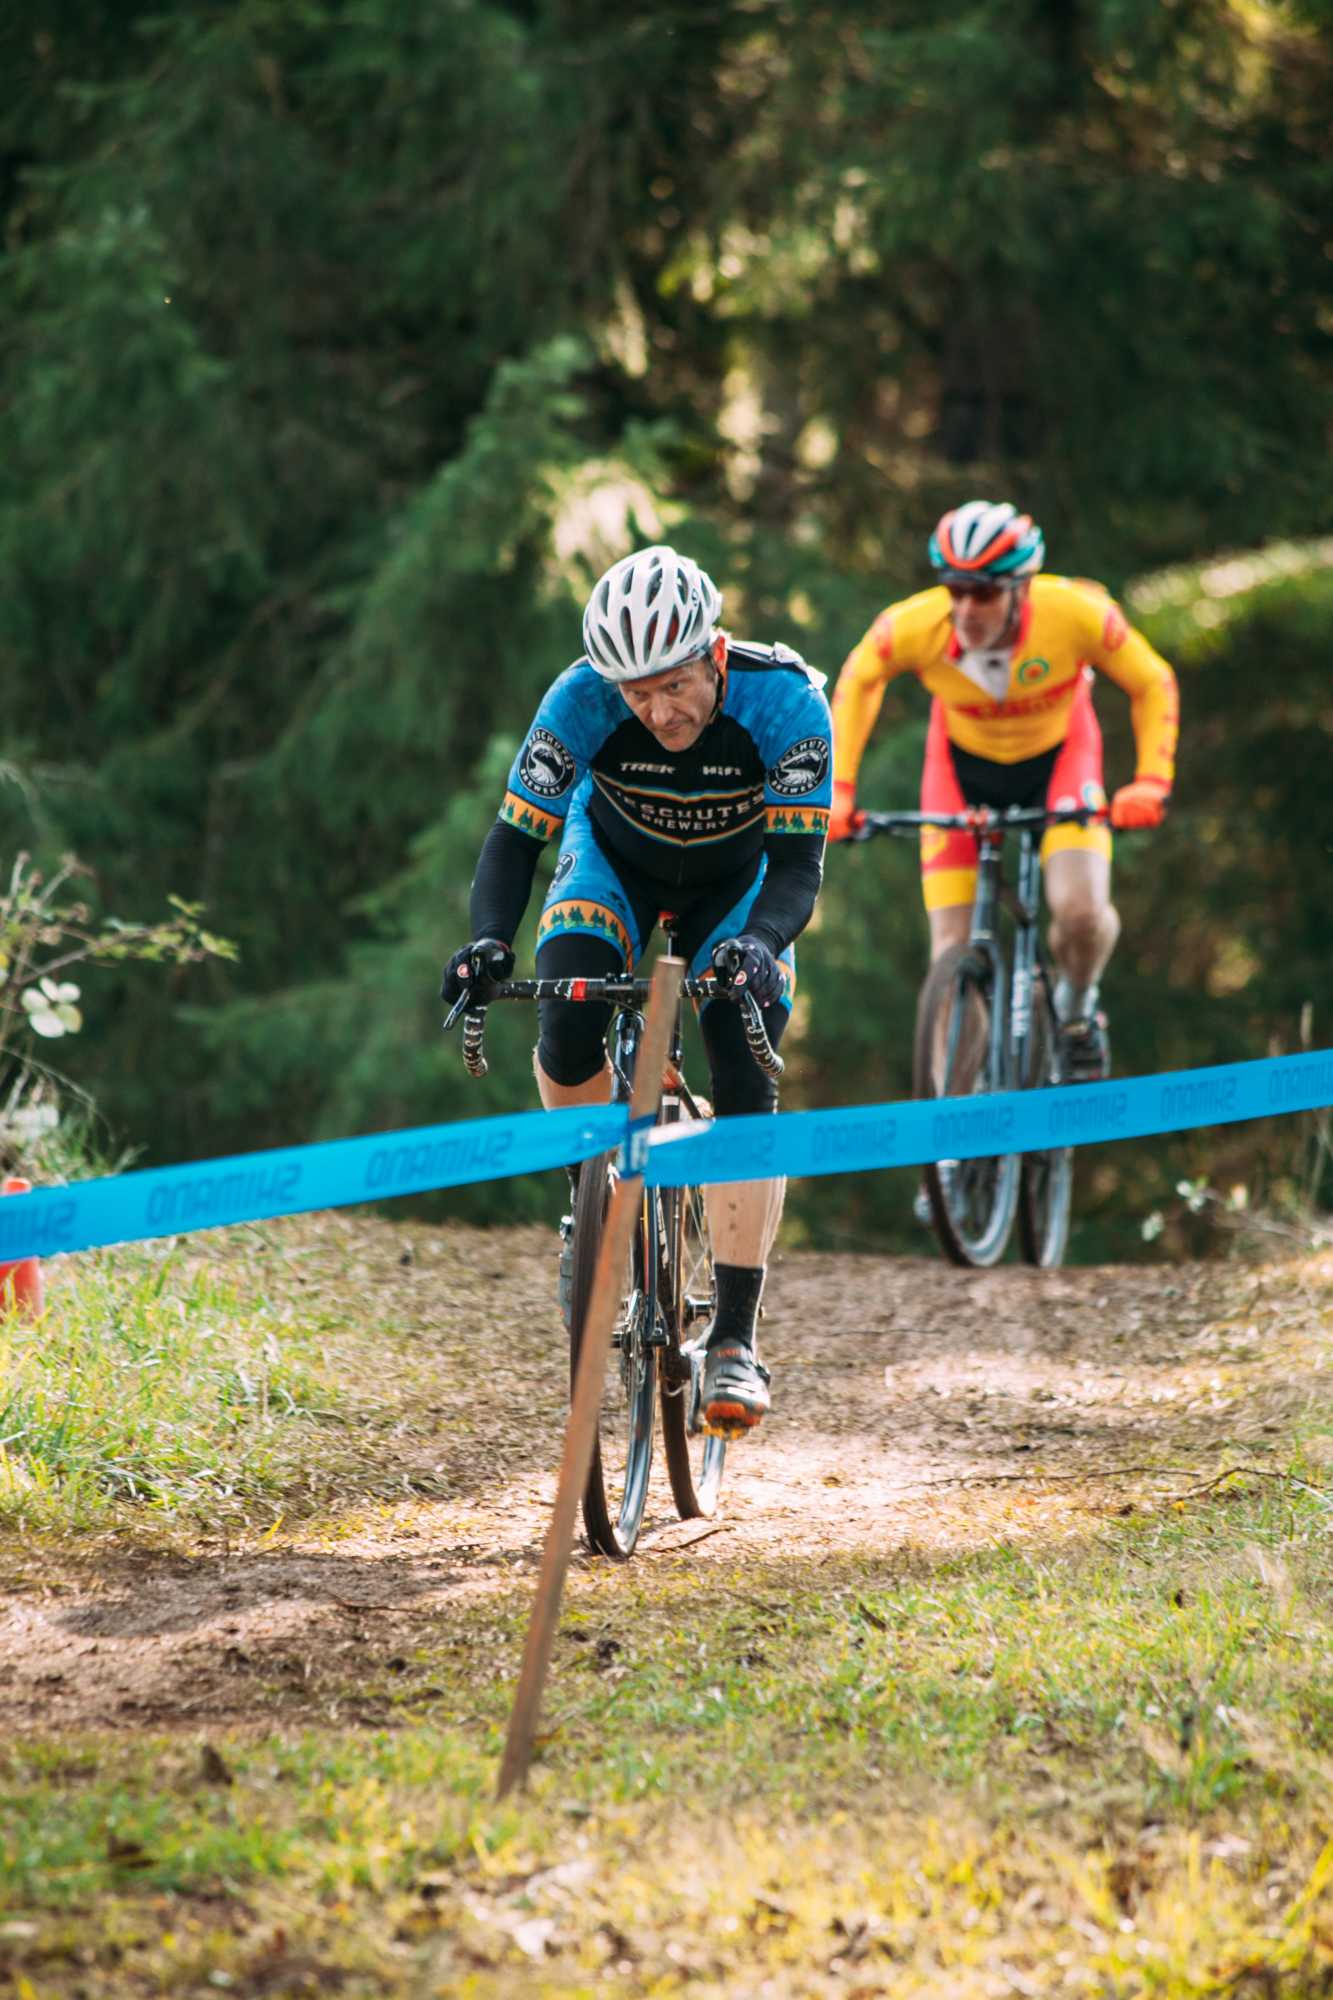 Cyclocross18_CCCX_RainierHS-161-mettlecycling.jpg